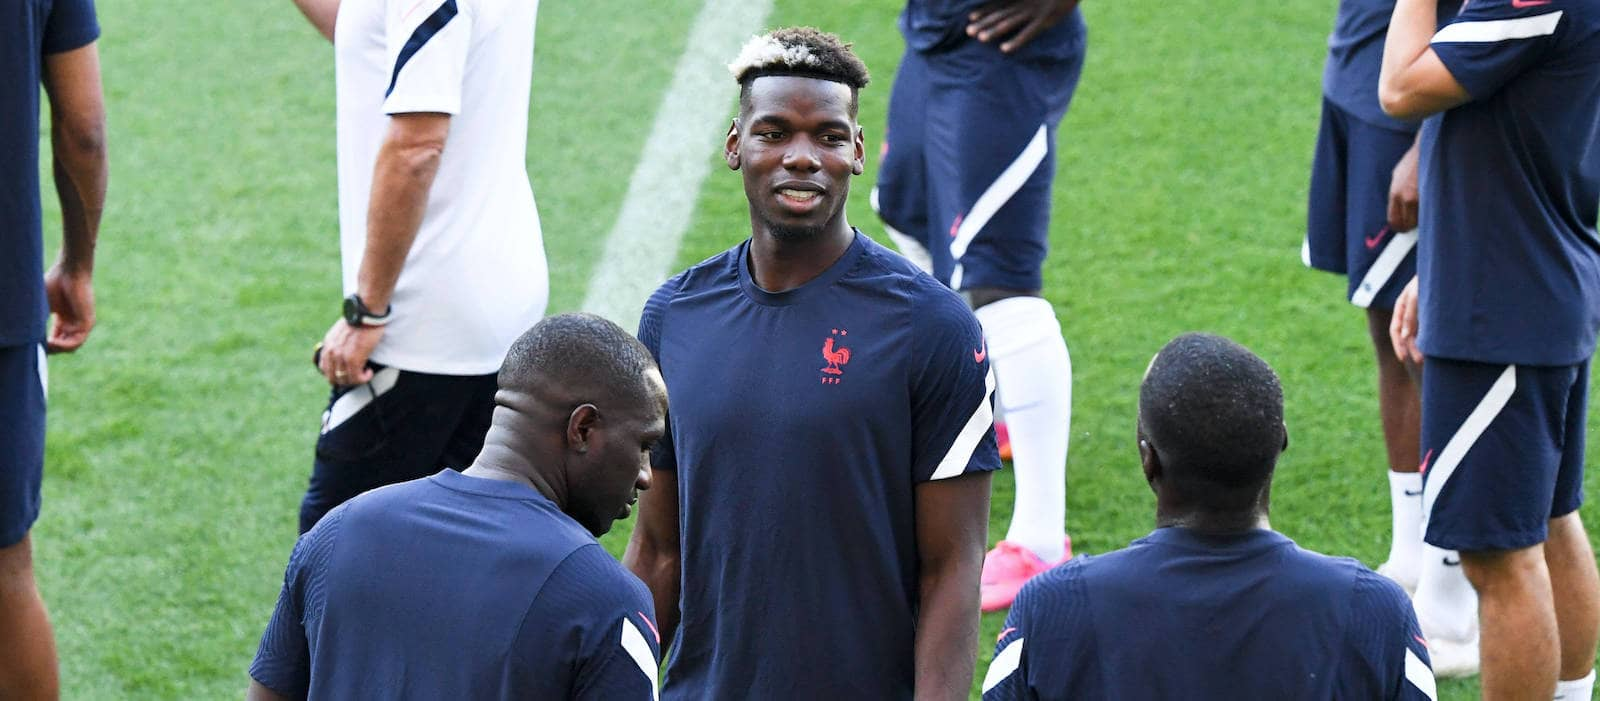 Manchester United's Paul Pogba not keen on Paris St Germain switch - The Peoples Person